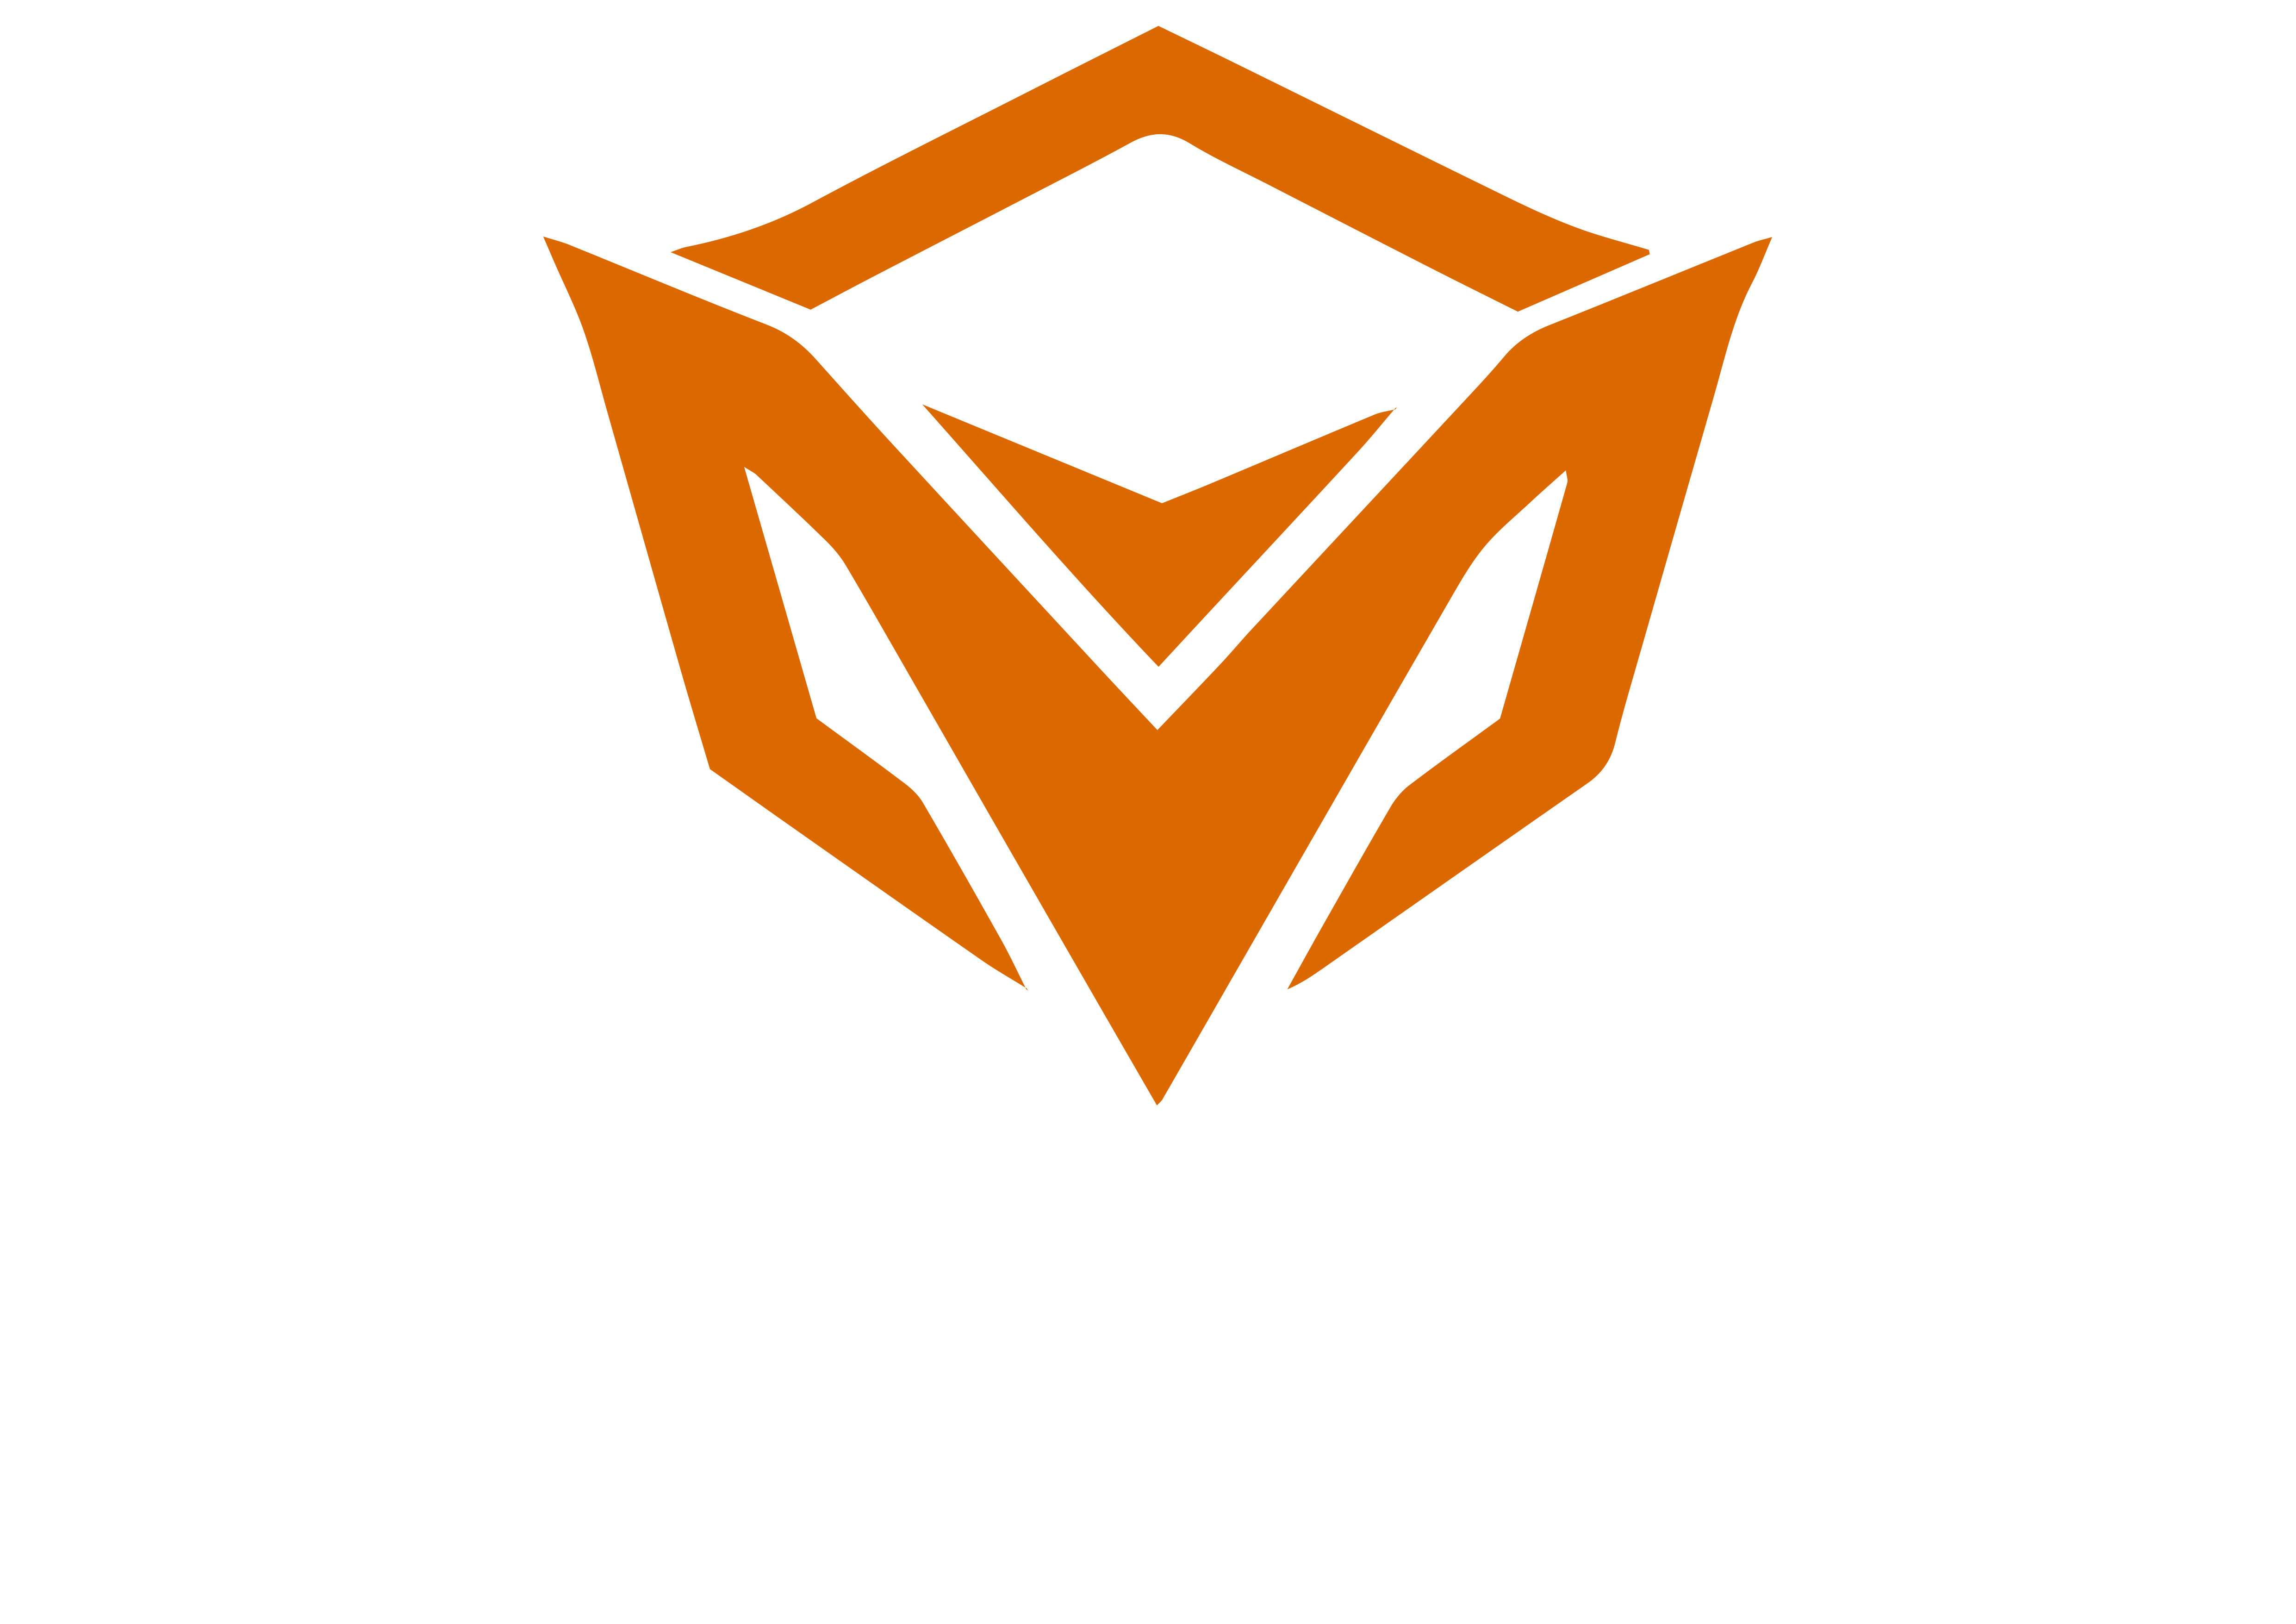 Meetion Chile